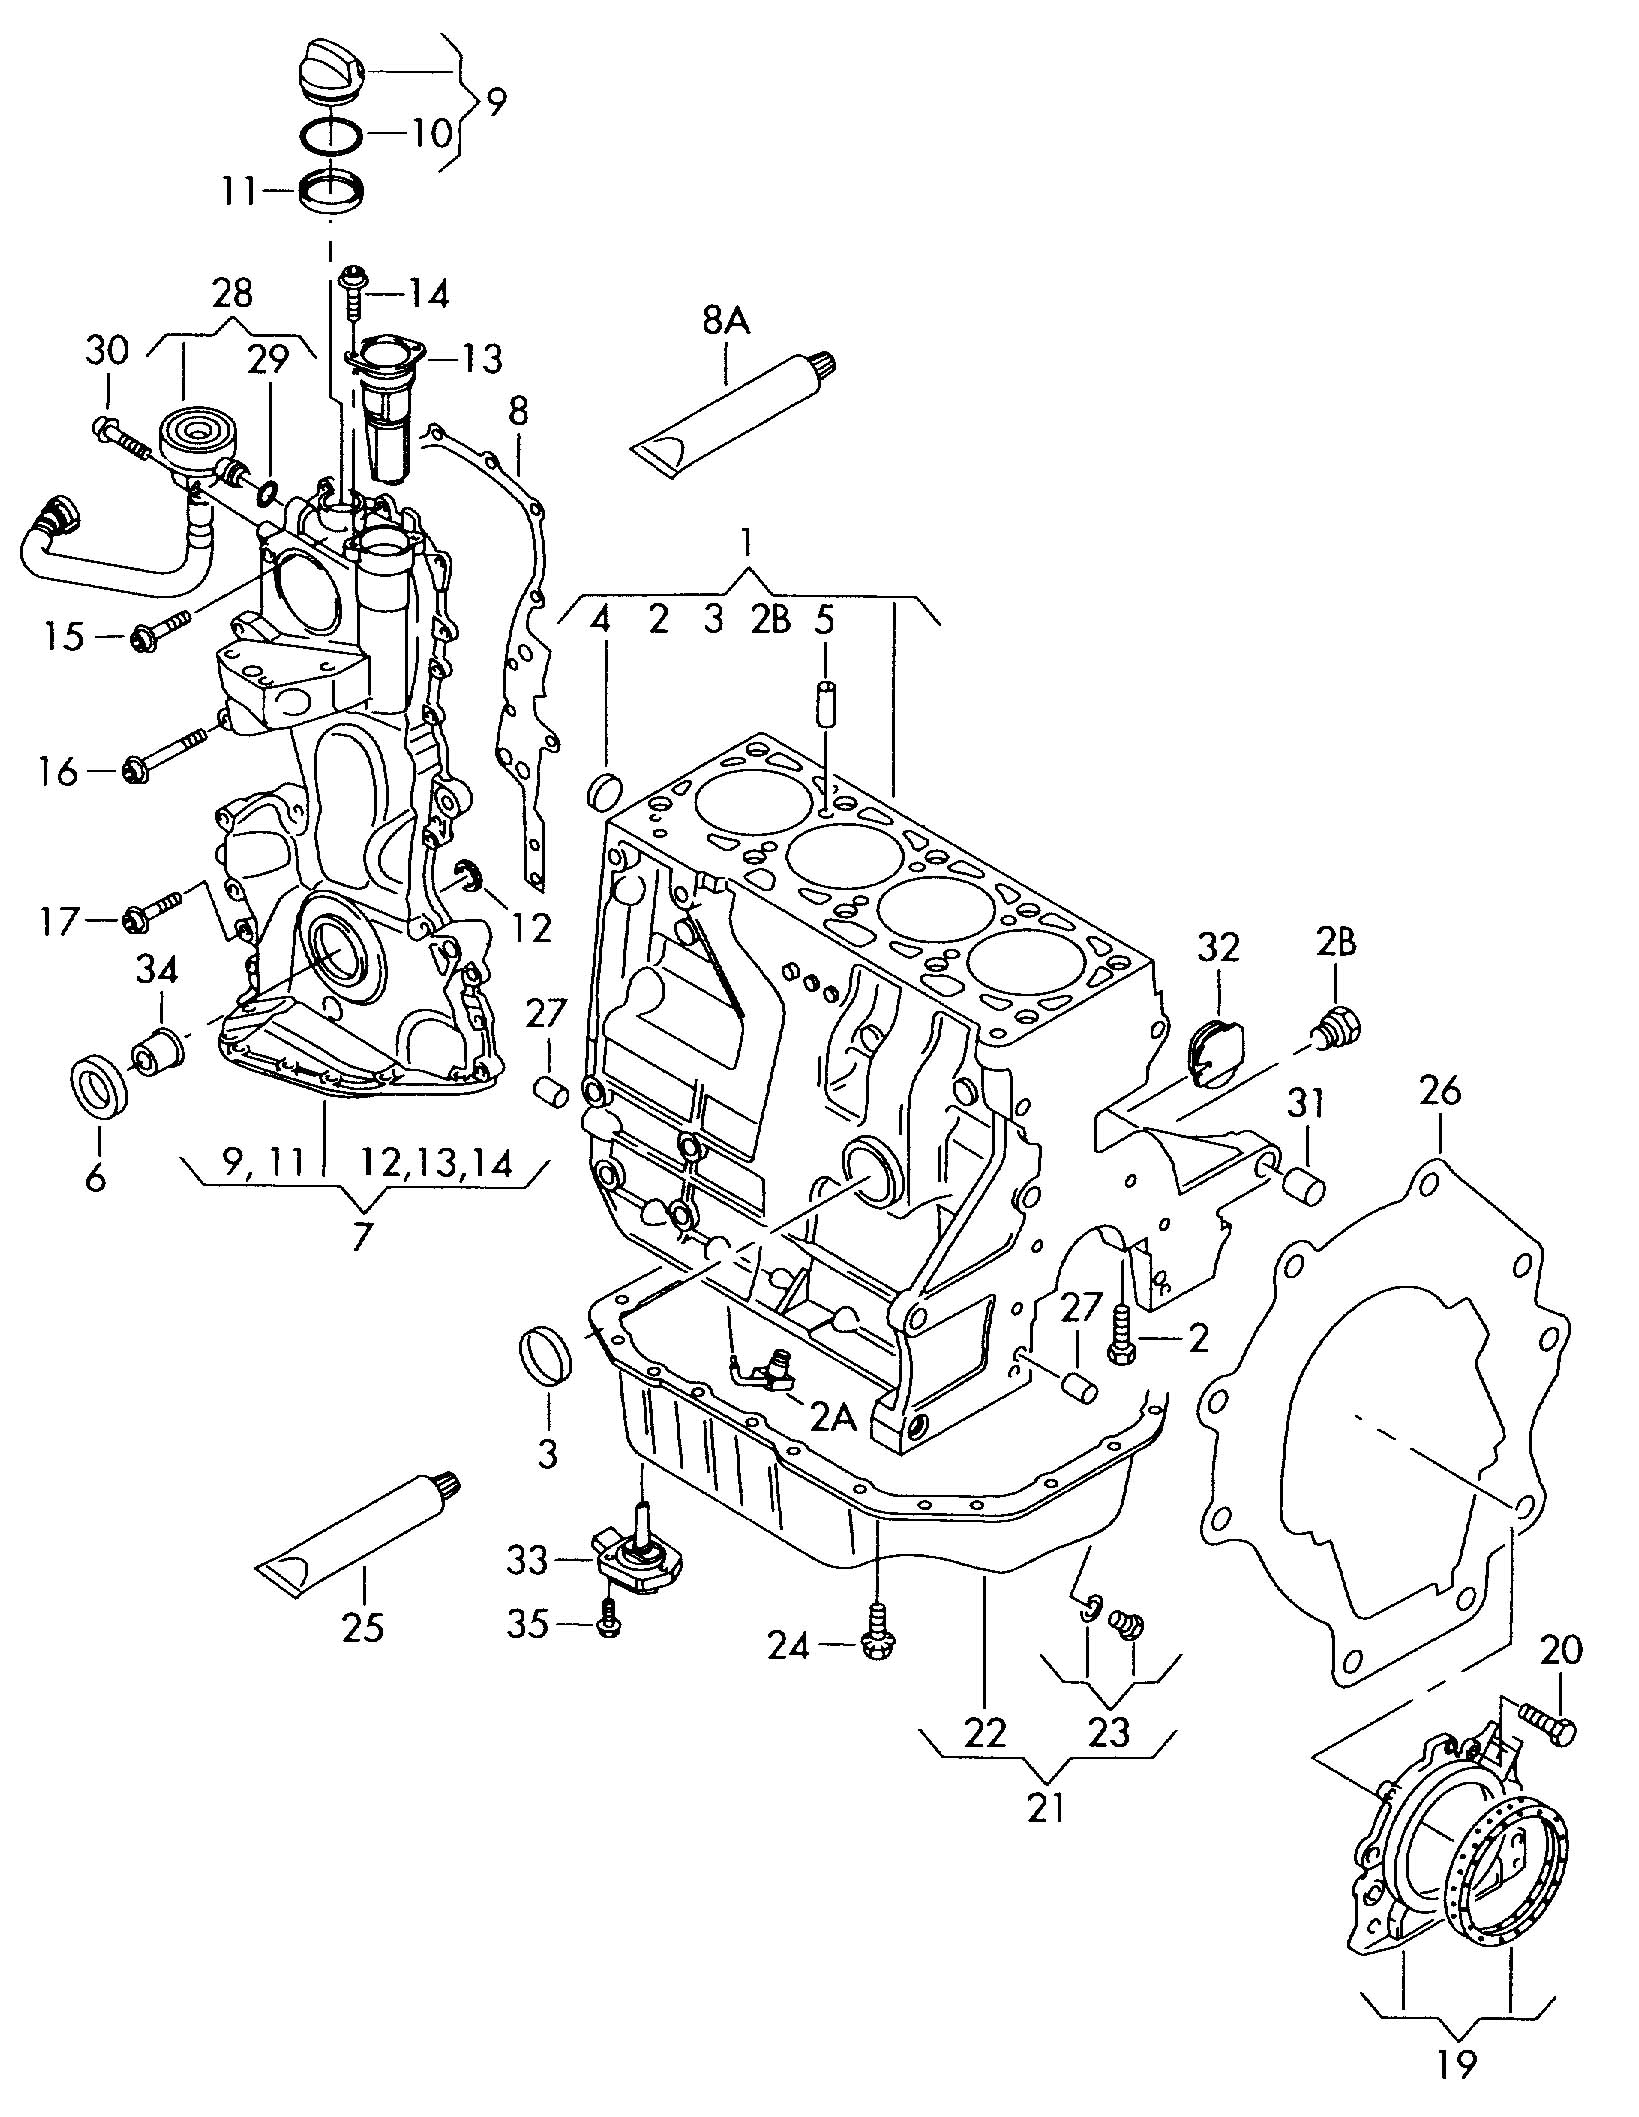 Volkswagen Eos 2.0L Only to be used with: sealing flange